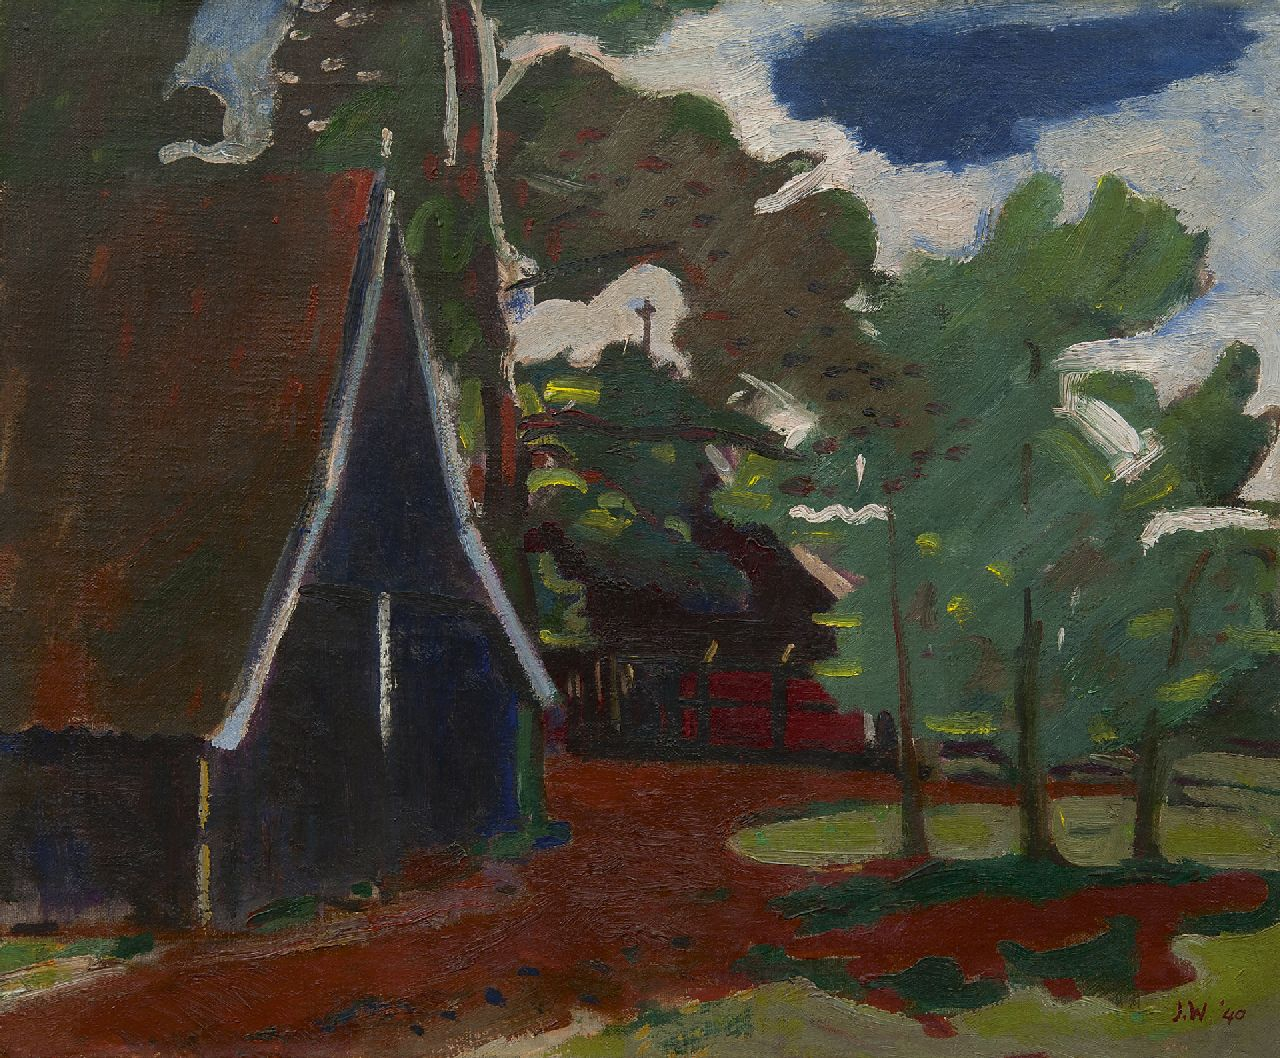 Wiegers J.  | Jan Wiegers | Paintings offered for sale | A farm in Twente, oil on canvas 45.4 x 55.7 cm, signed l.r. with initials and on the stretcher in full and dated '40